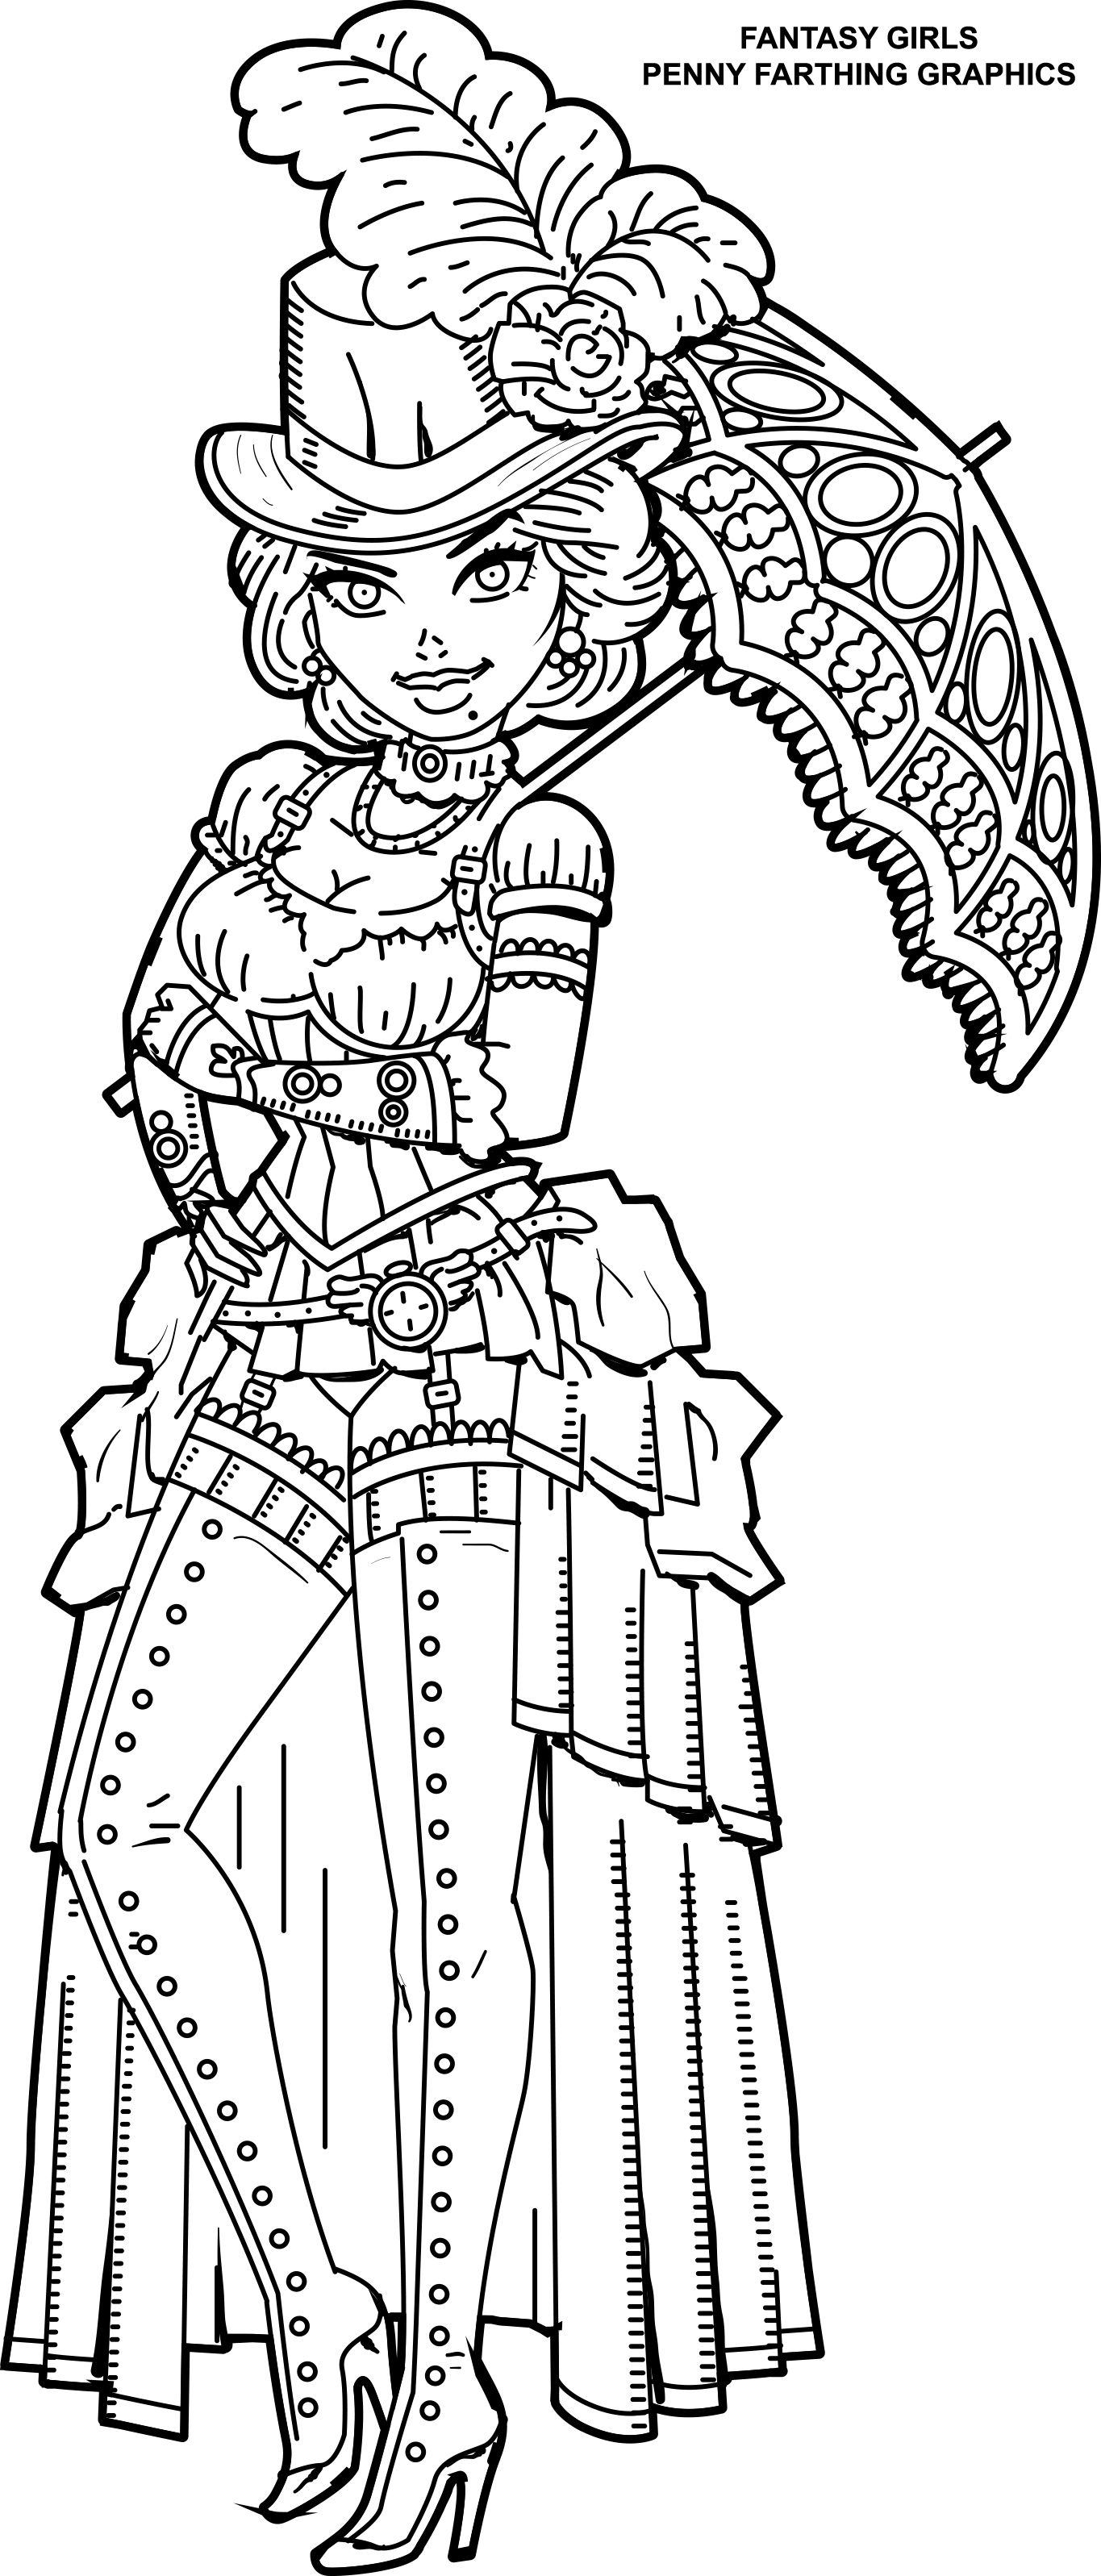 Ste Unk Coloring Page From Fantasy Girls Femme Fatales